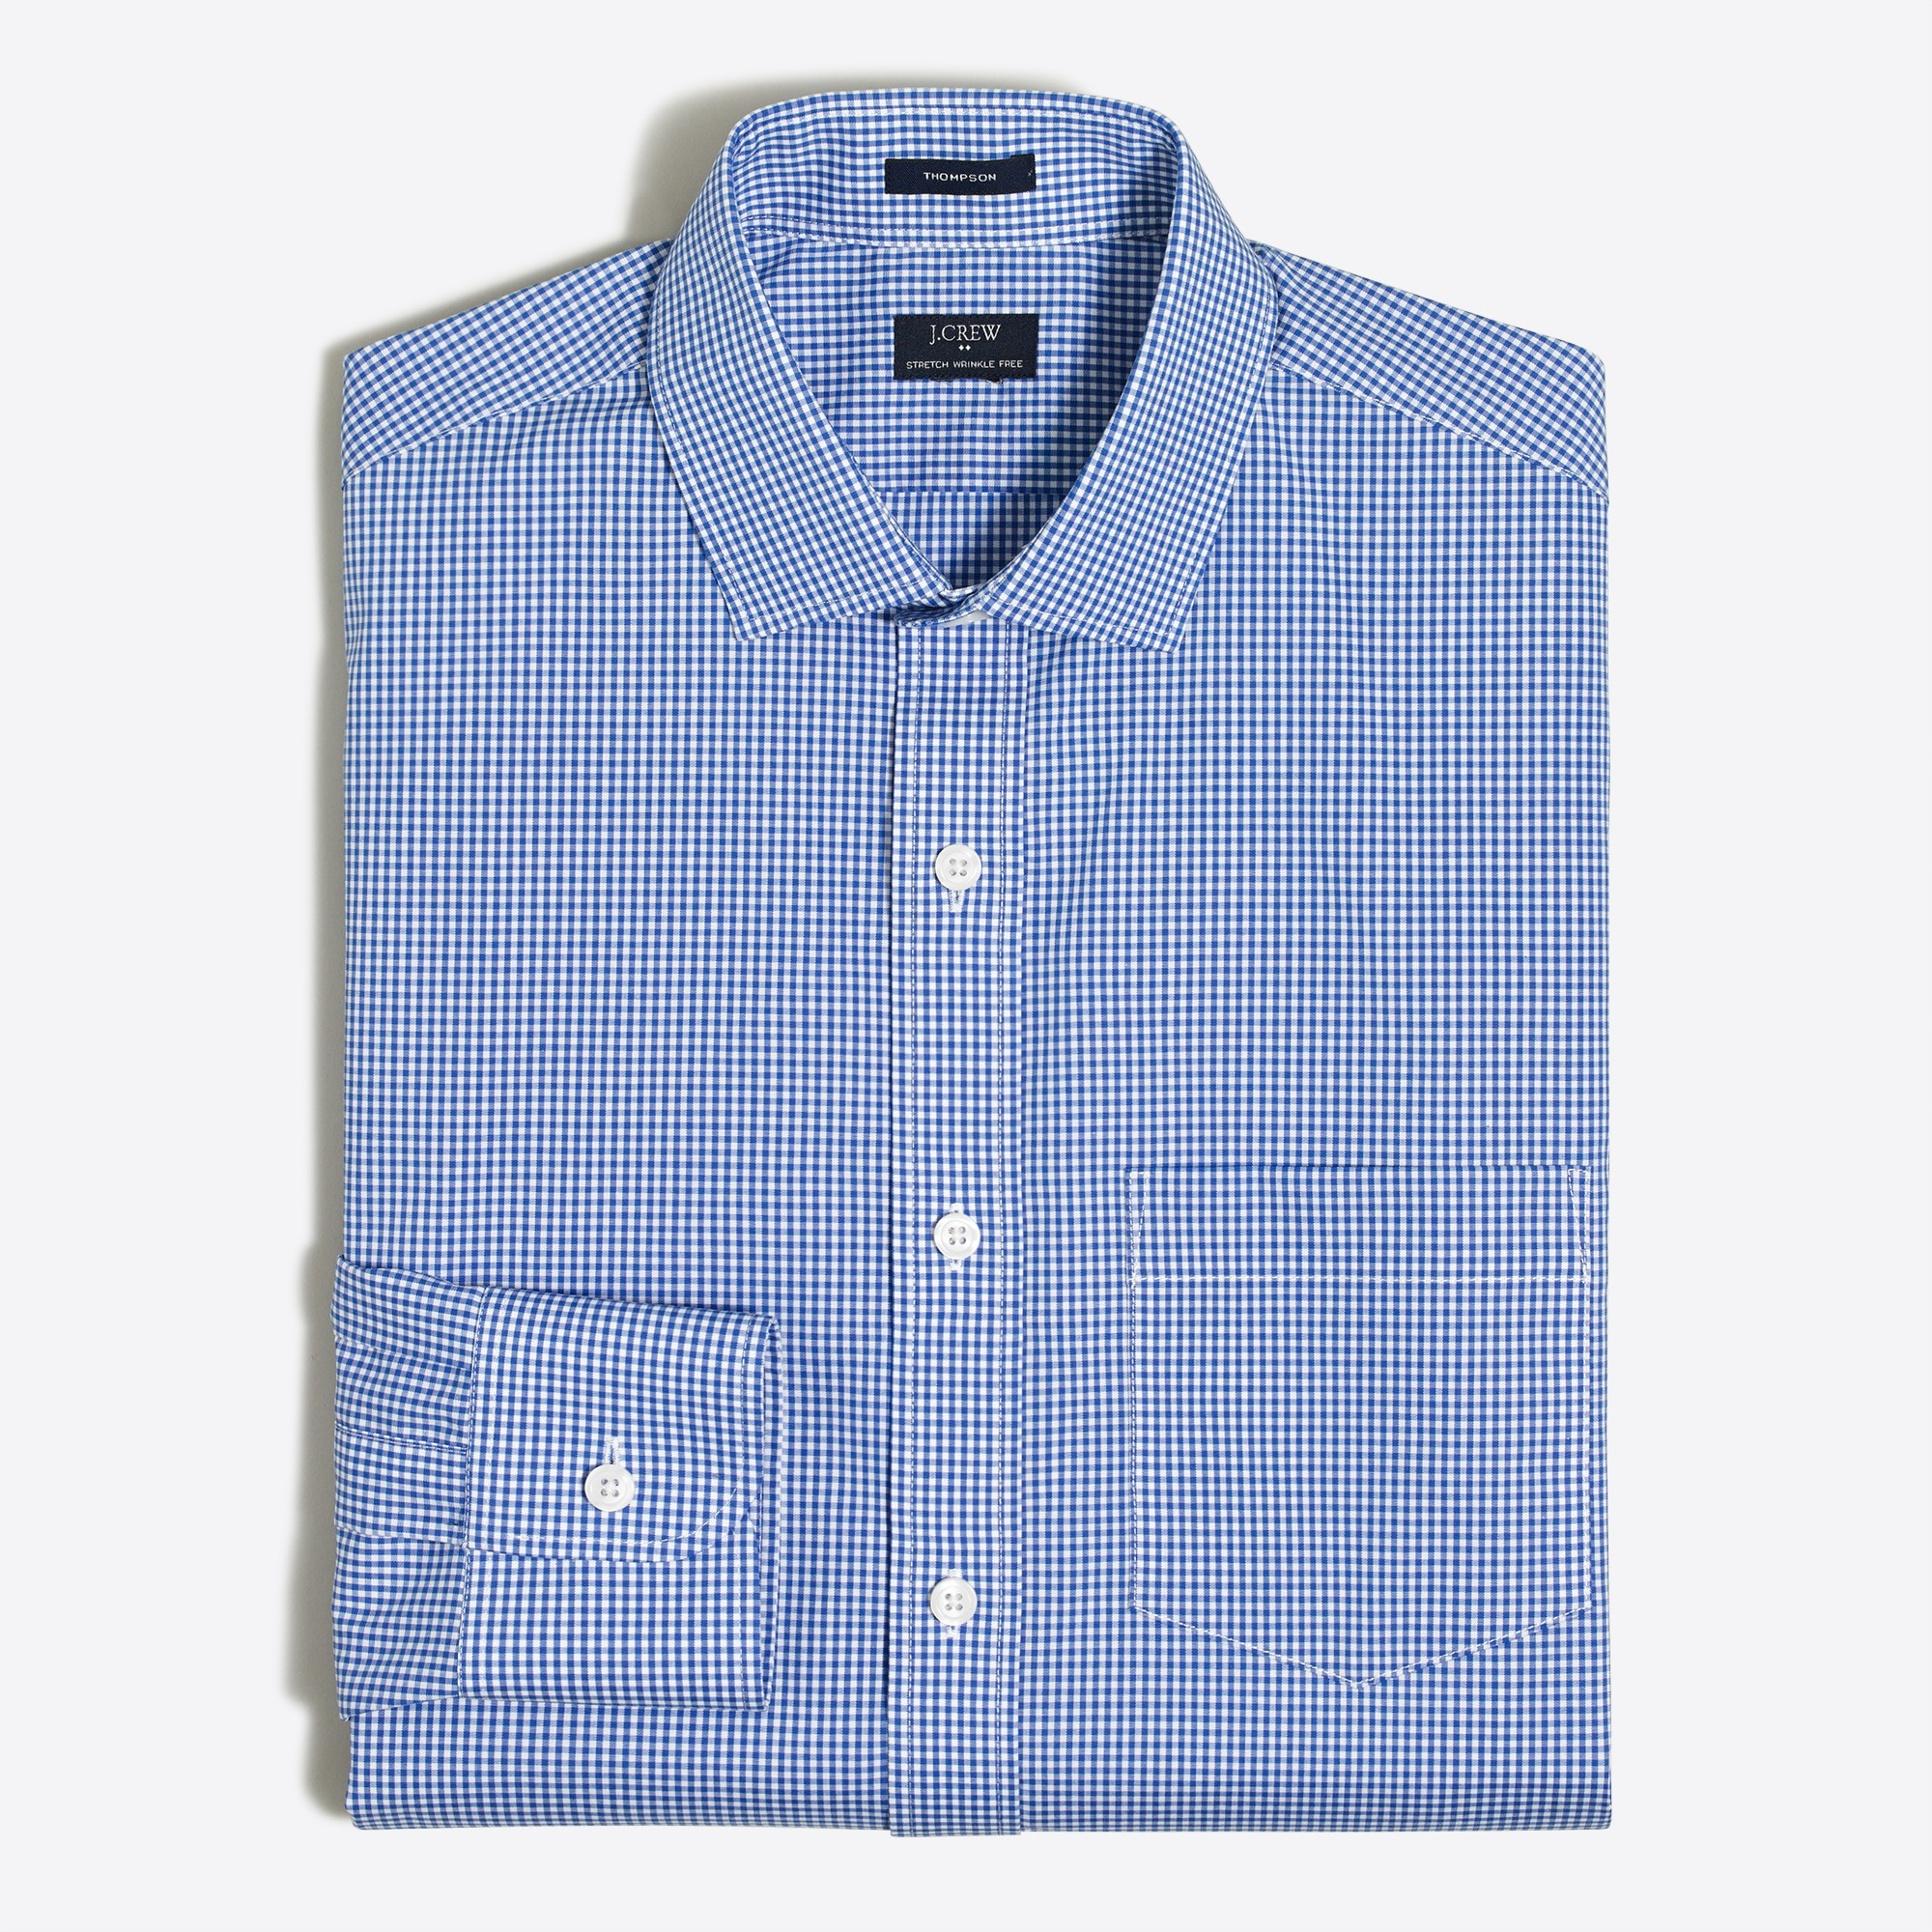 Image 2 for Thompson slim flex wrinkle-free dress shirt